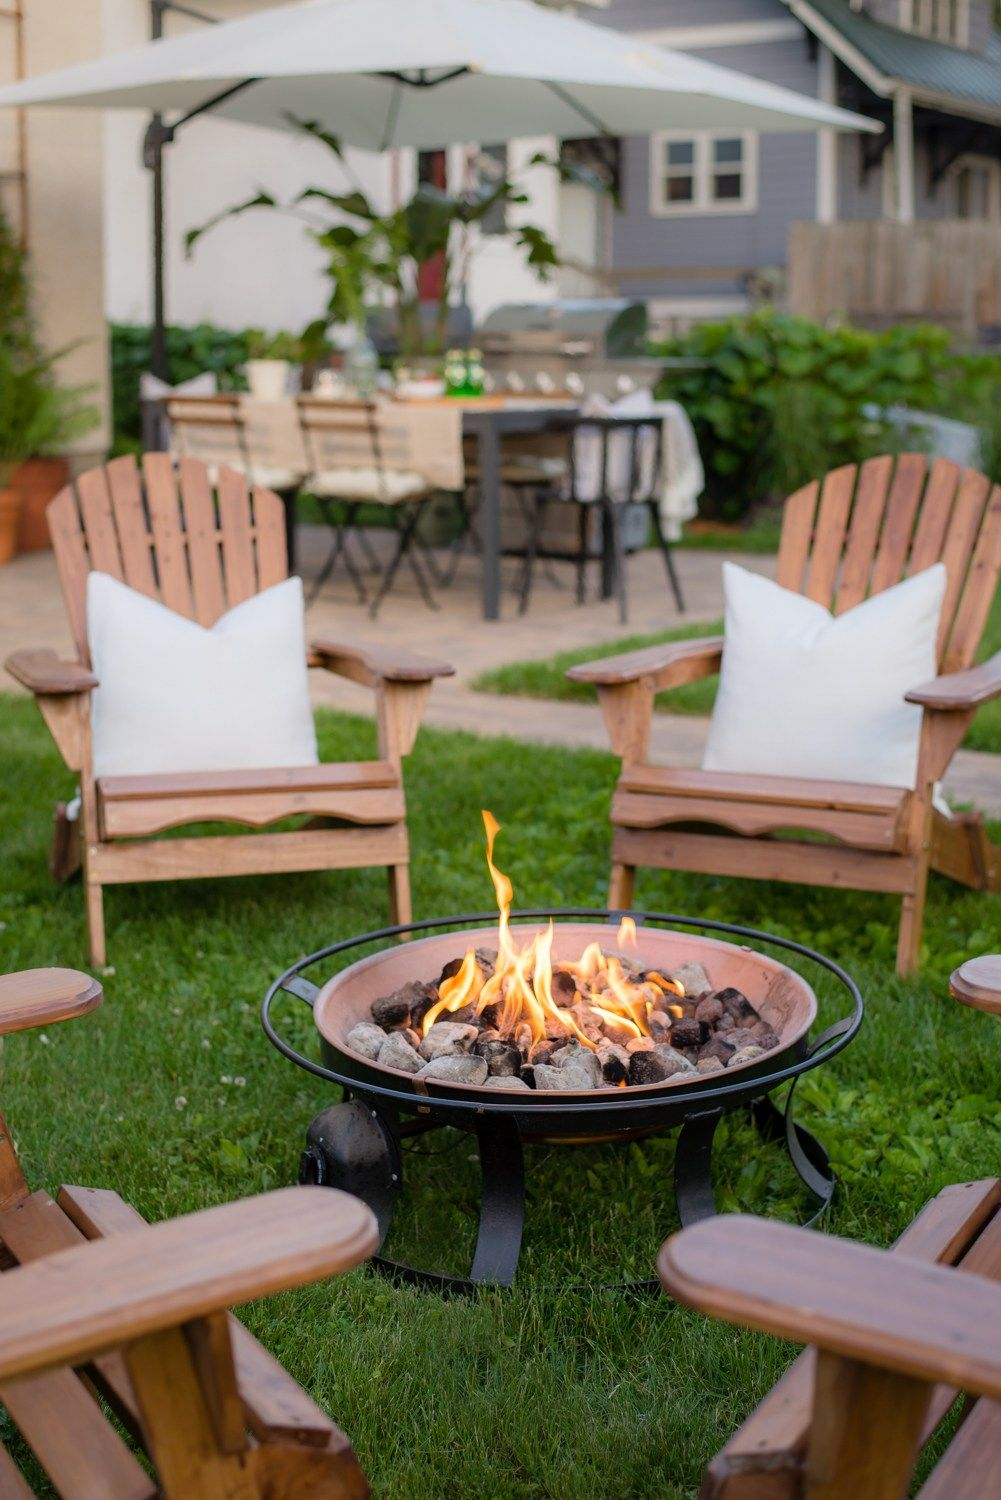 Backyard Redesign Before After Reveal Fire Pit Backyard Fire